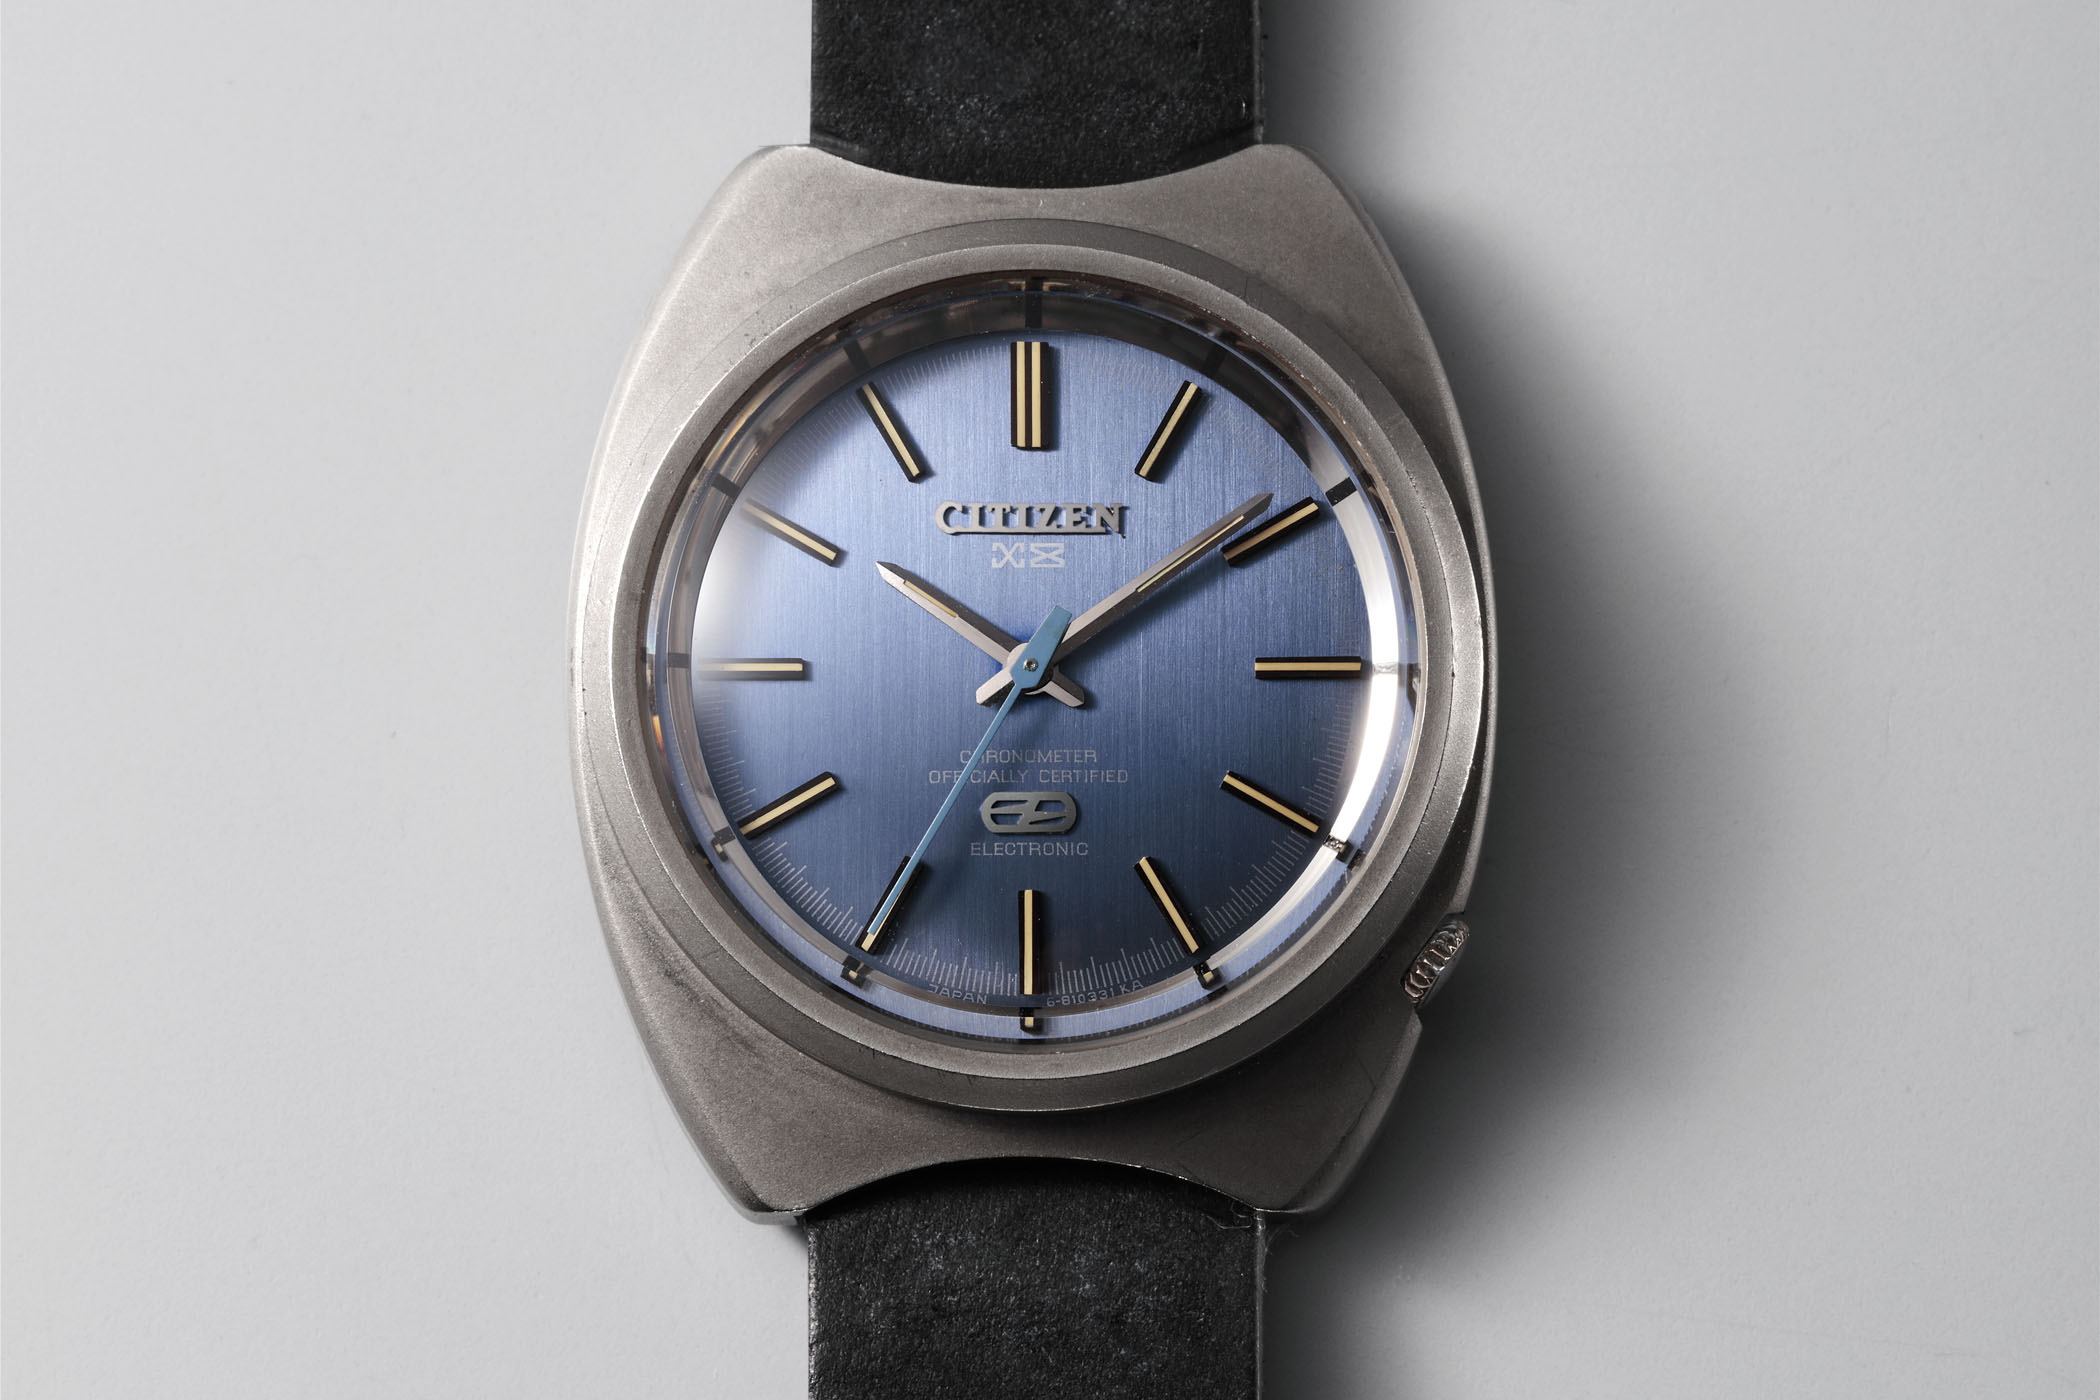 1970 Citizen X-8 Chronometer - first titanium watch